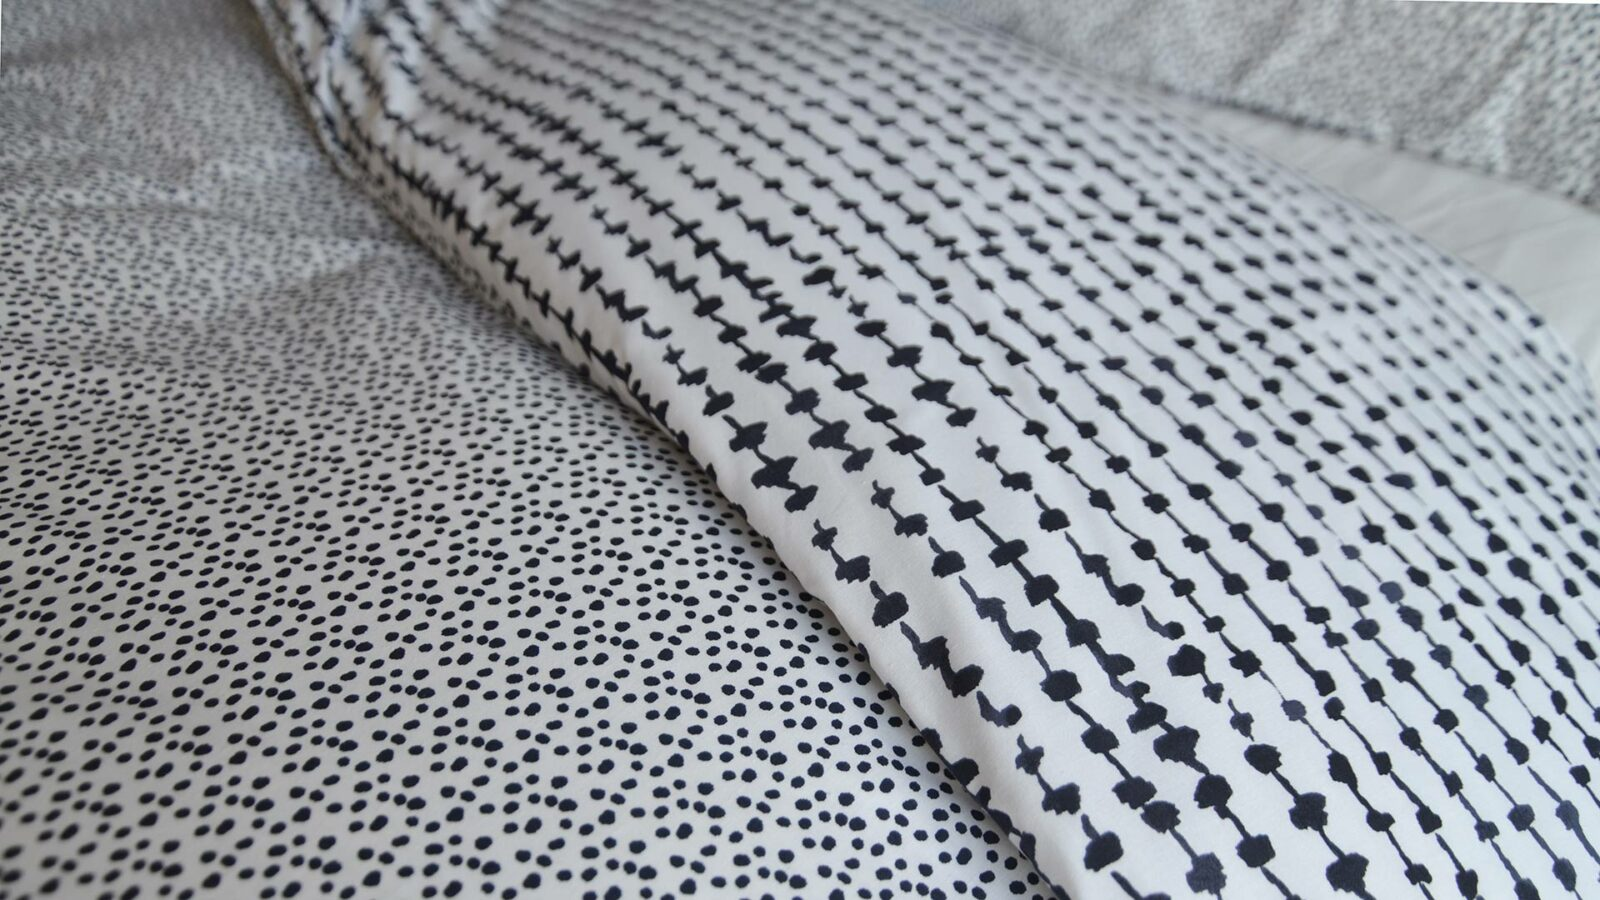 Closer view of the pretty pattern to the black and white reversible duvet cover set